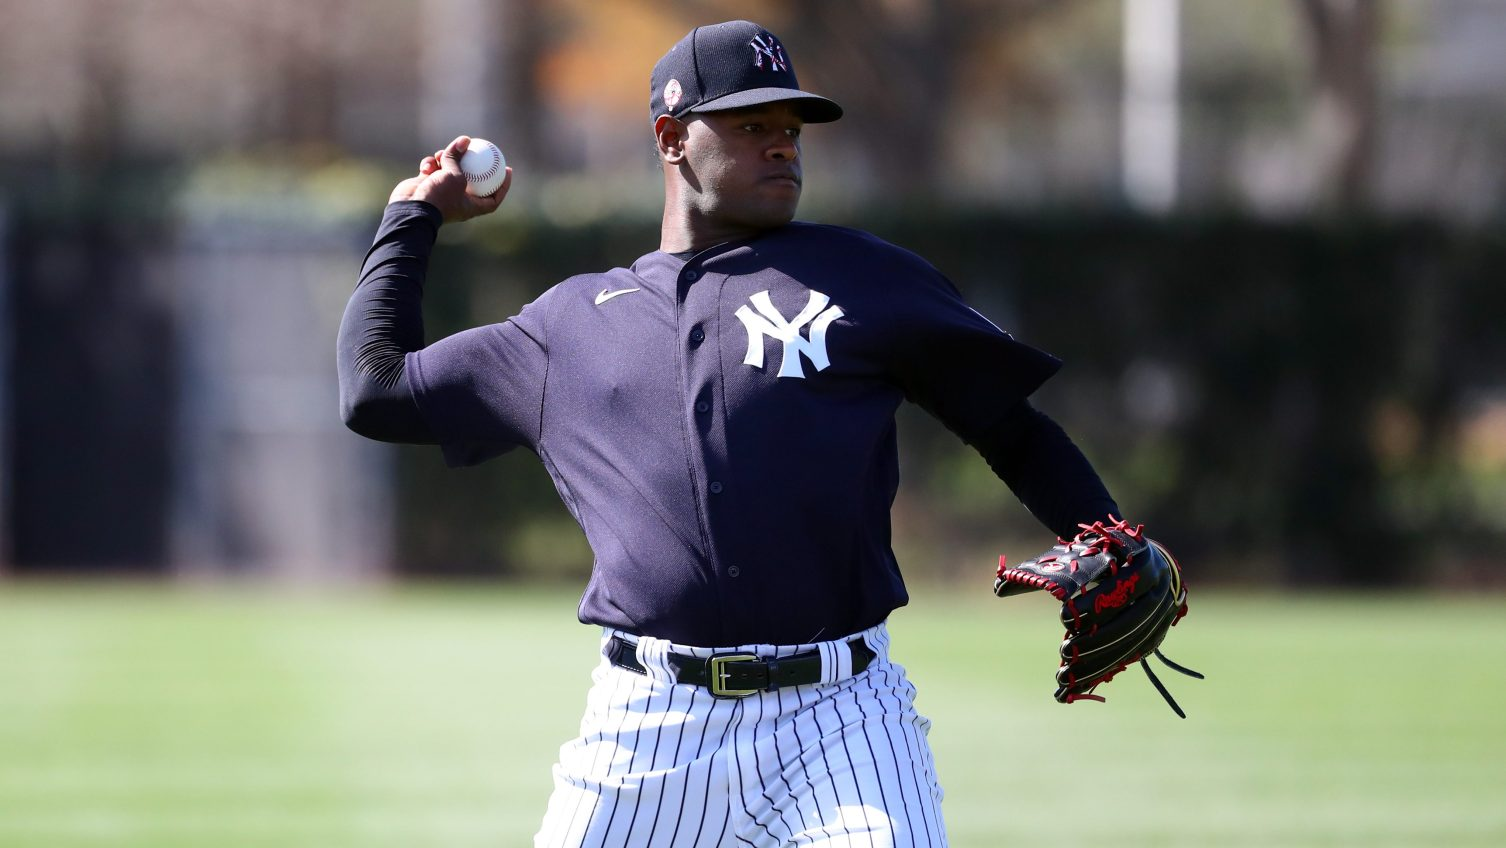 Former ace Severino rejoins Yankees after out nearly two years